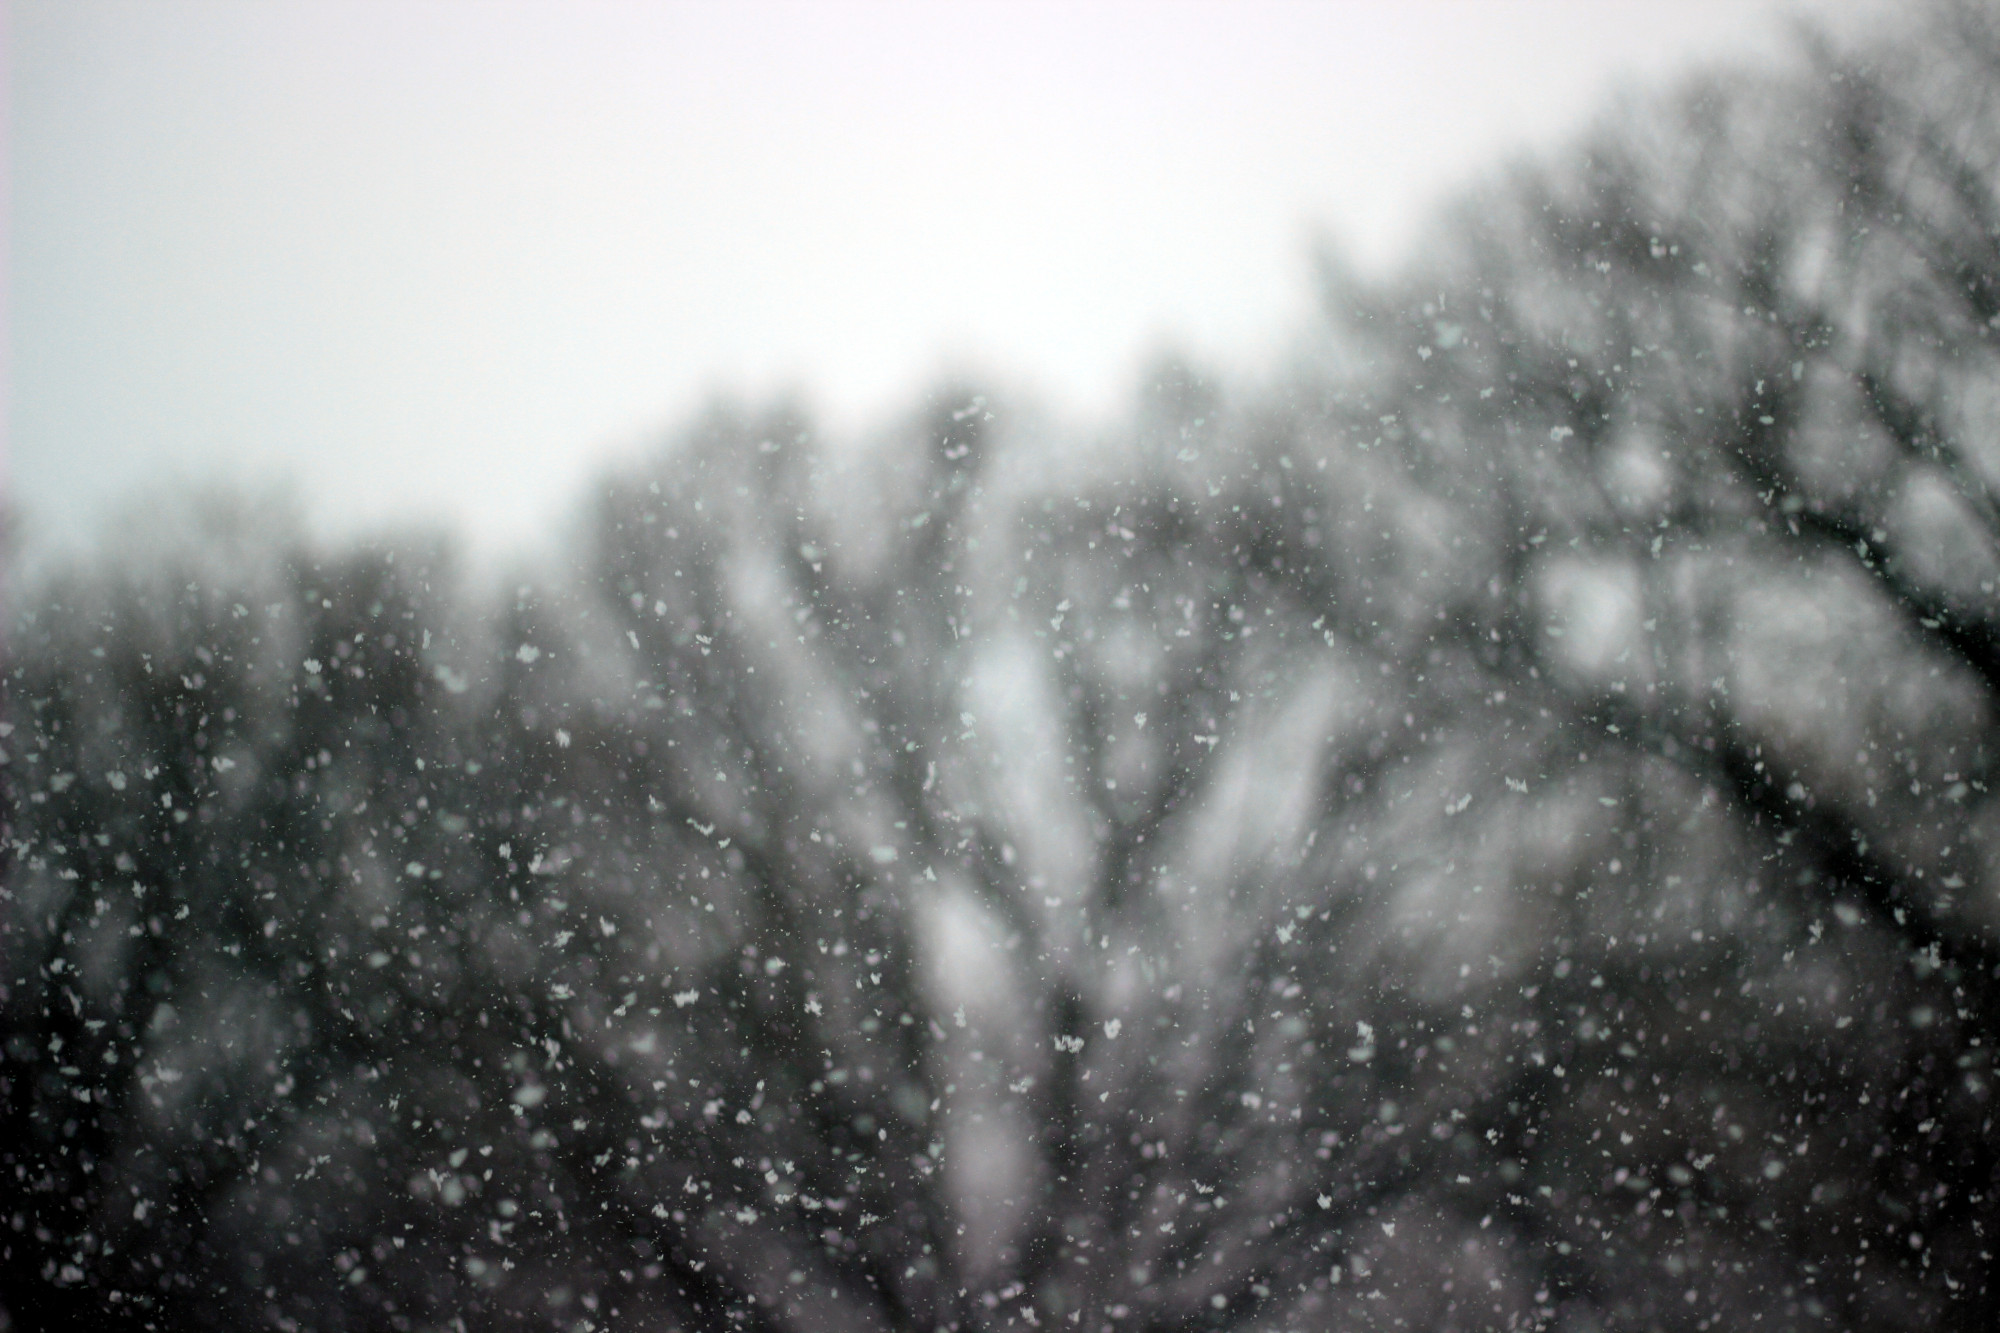 Snow in the air, with blurred trees as a backdrop